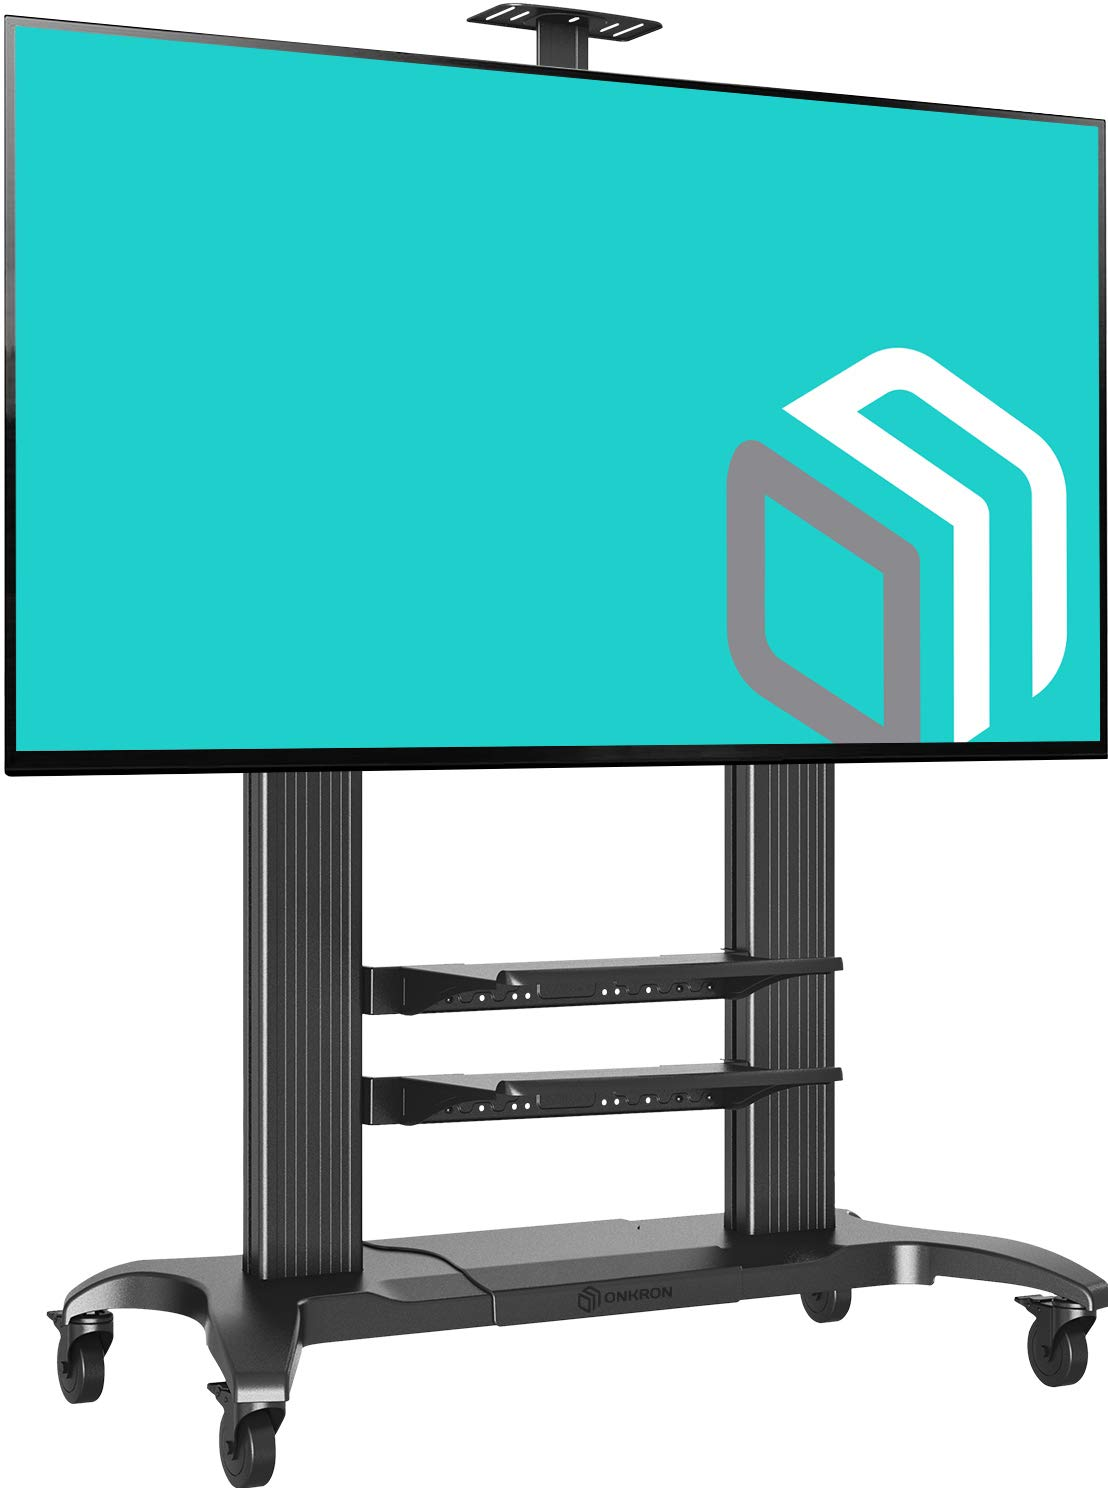 ONKRON Mobile TV Stand Rolling TV Cart for 60'' to 100-inch LCD LED Plasma Flat Panel Screens up to 300 lbs Black by ONKRON